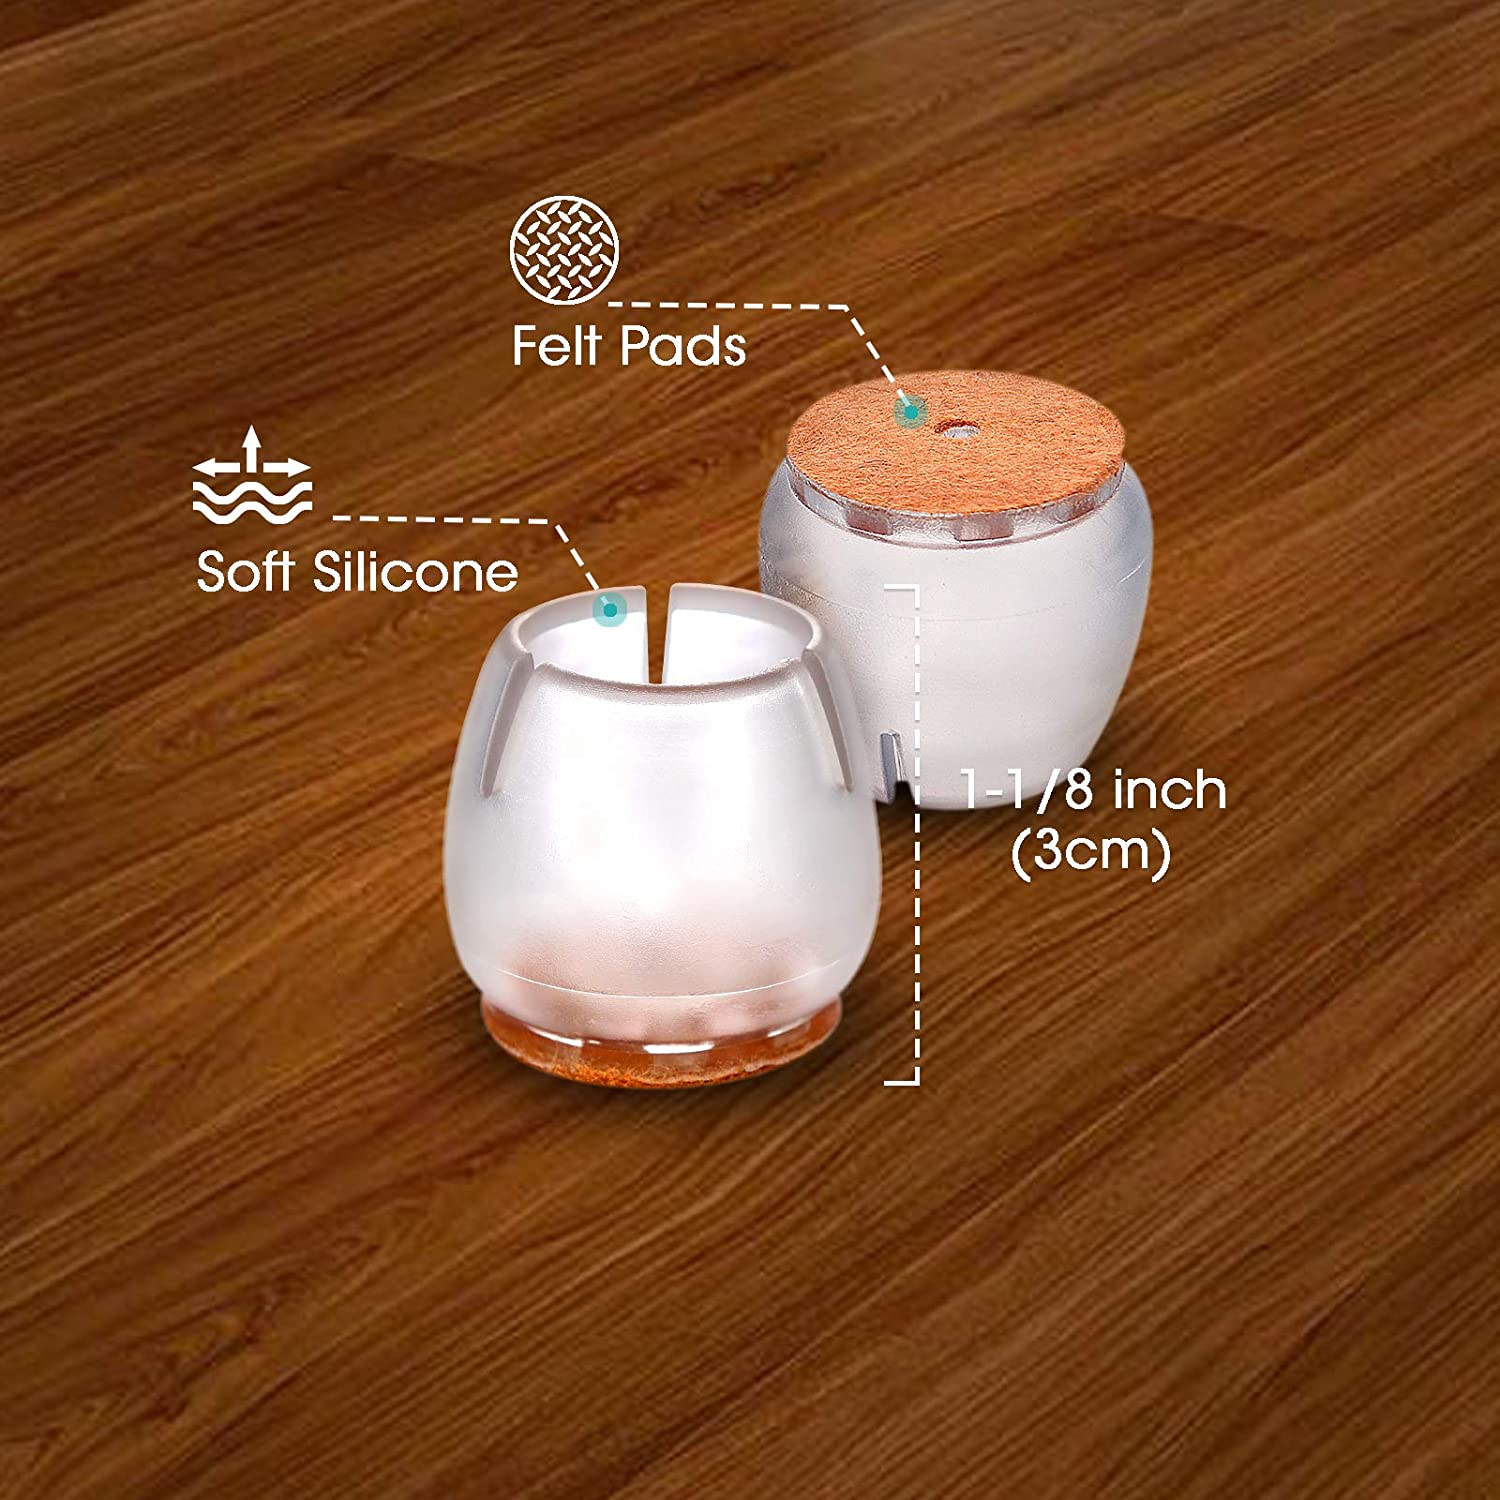 8 Pack MelonBoat Chair Leg Floor Protectors with Felt Furniture Pads A-RD027 Fit Round 1 inch to 1-3//16 inches 2.55-3.0cm Chair Glides Feet Caps